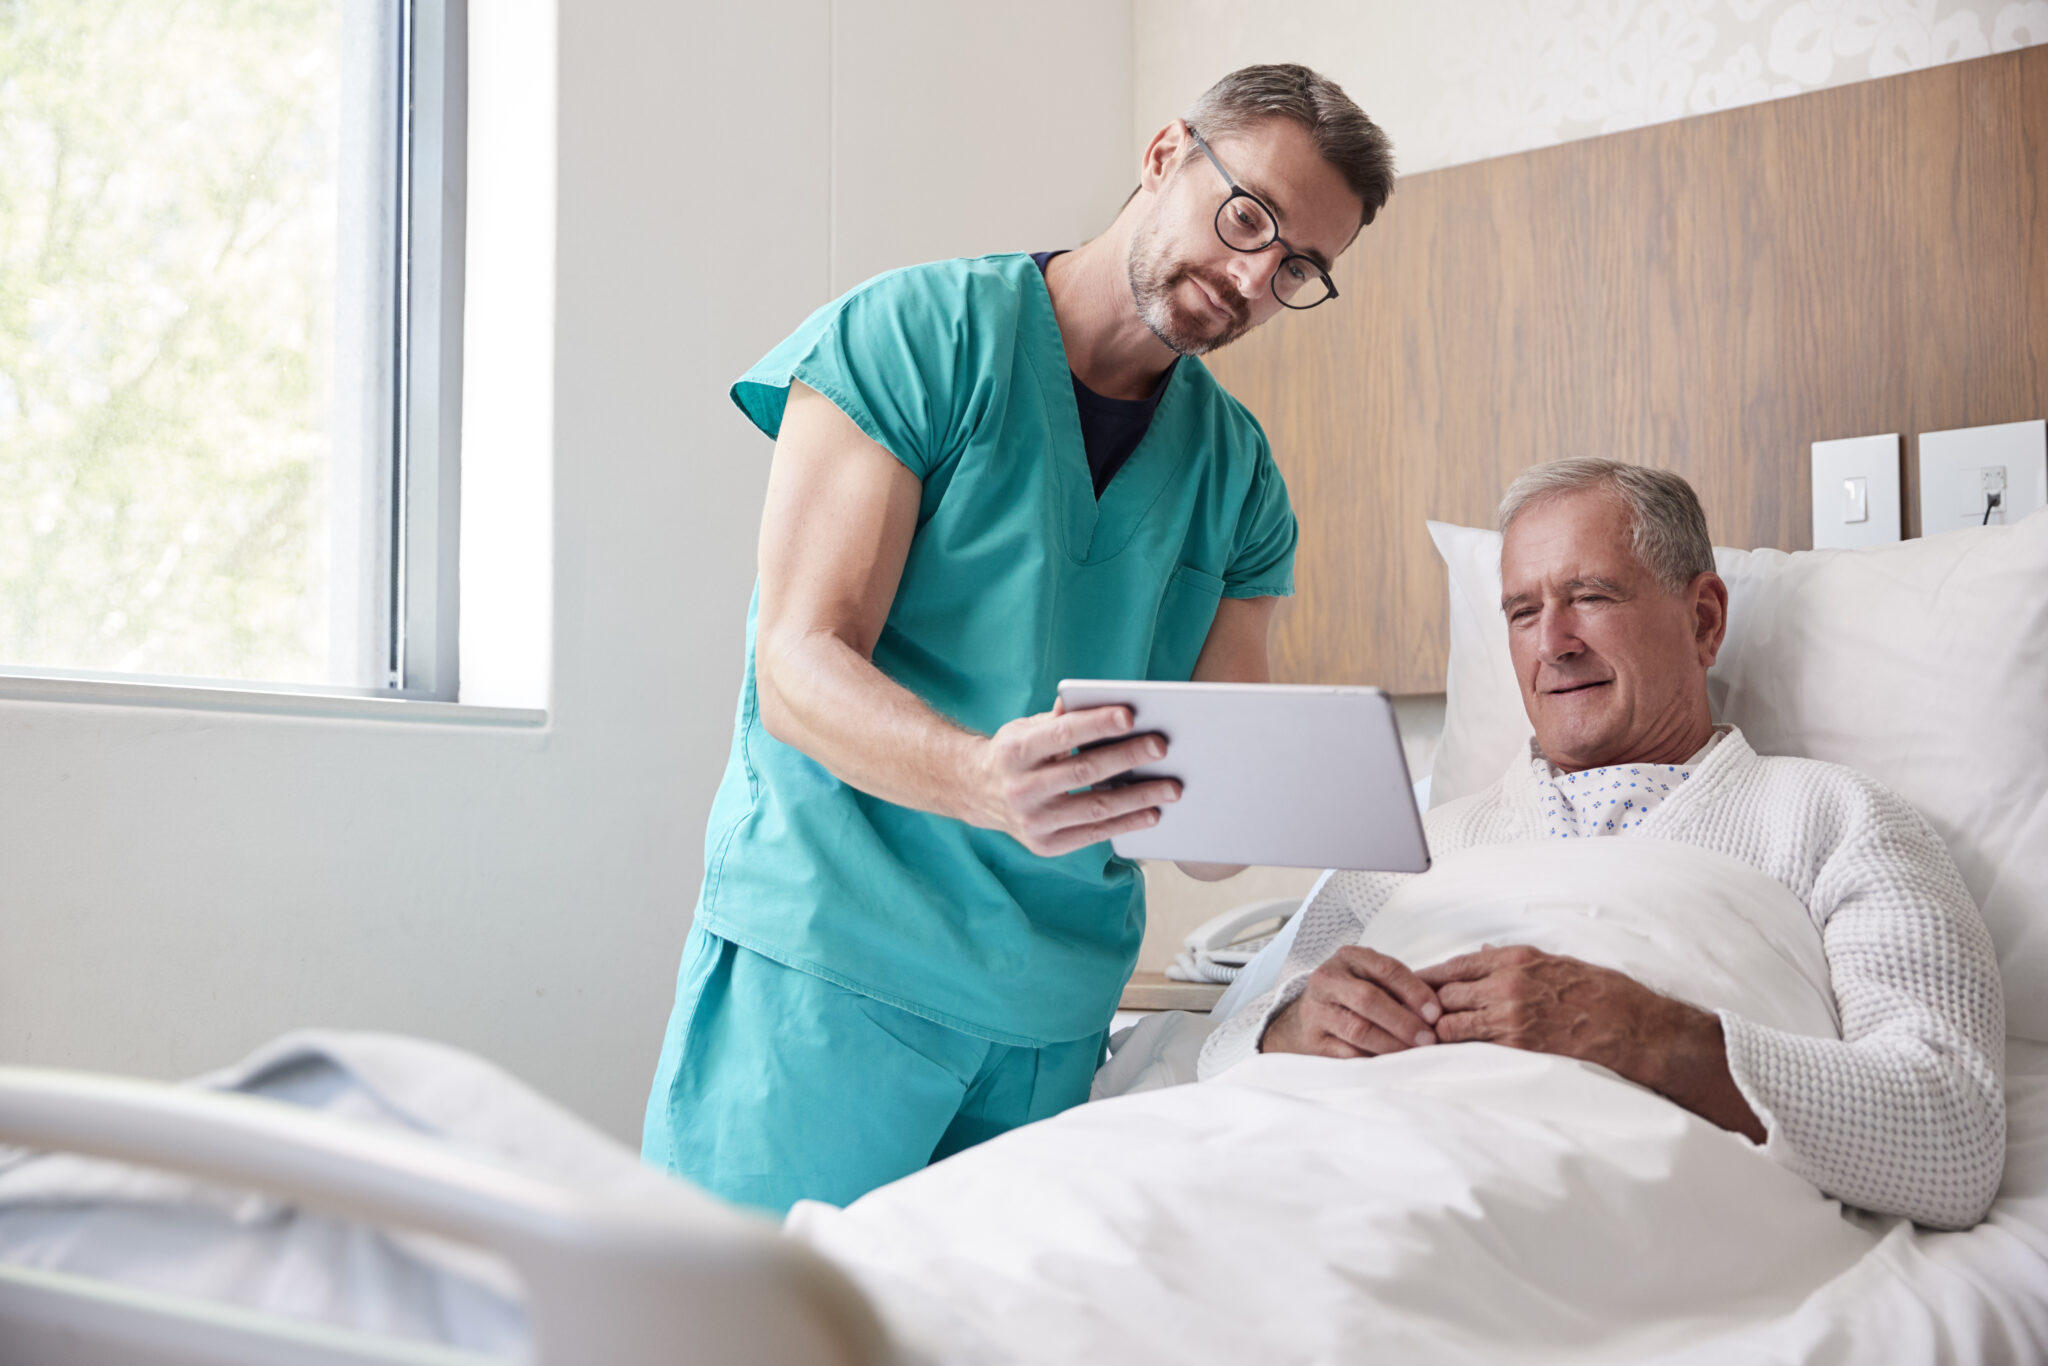 Man visiting with surgeon pre surgery